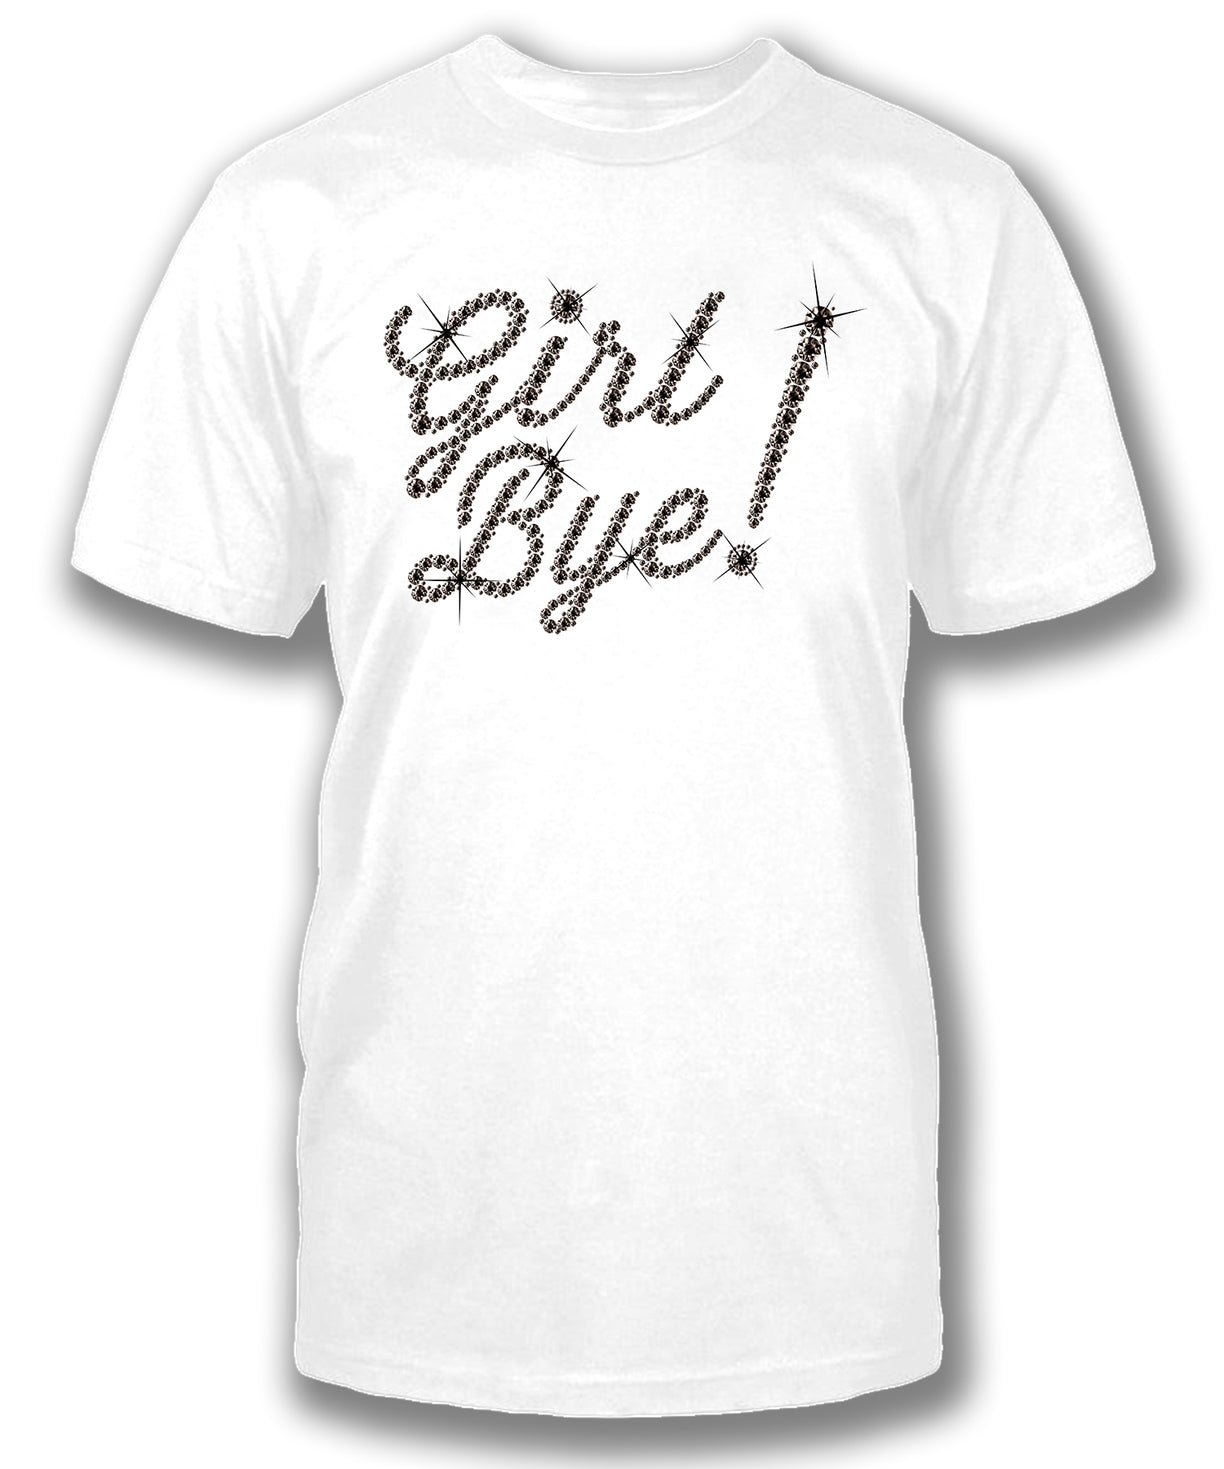 GIRL BYE (Diamond Print) - Men's short sleeve tee